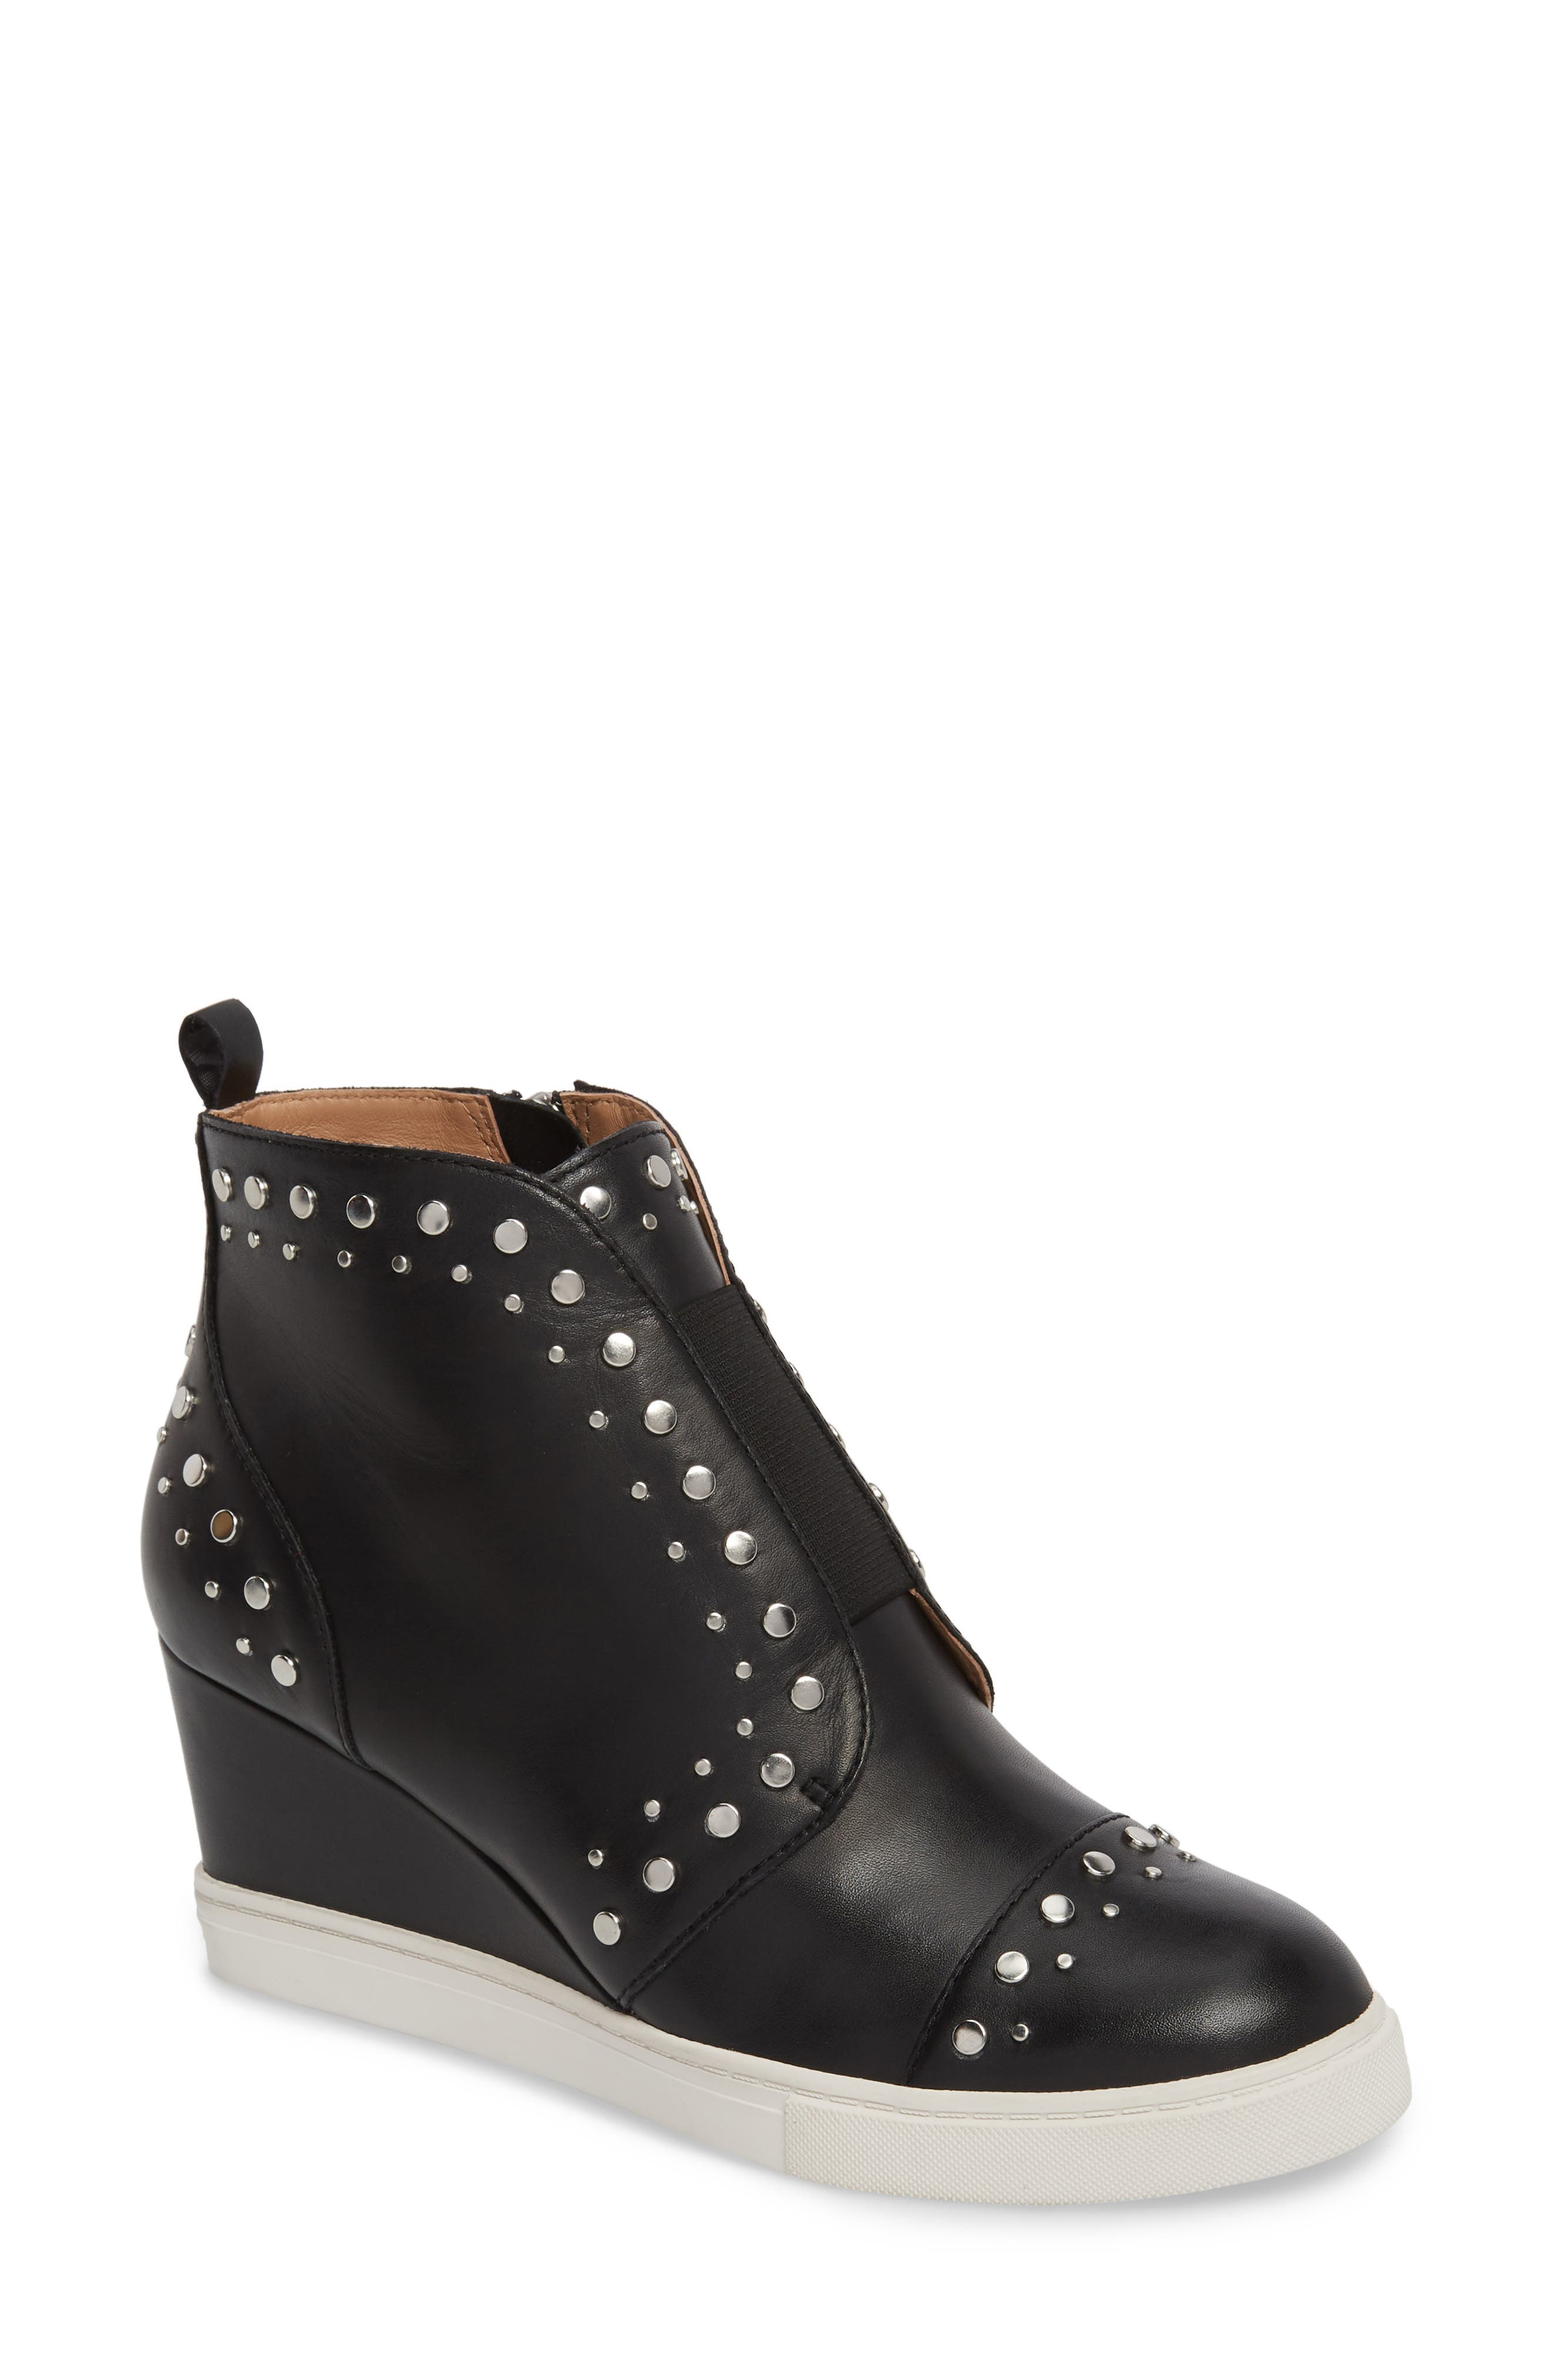 LINEA PAOLO, Felicity Wedge Sneaker, Main thumbnail 1, color, BLACK LEATHER